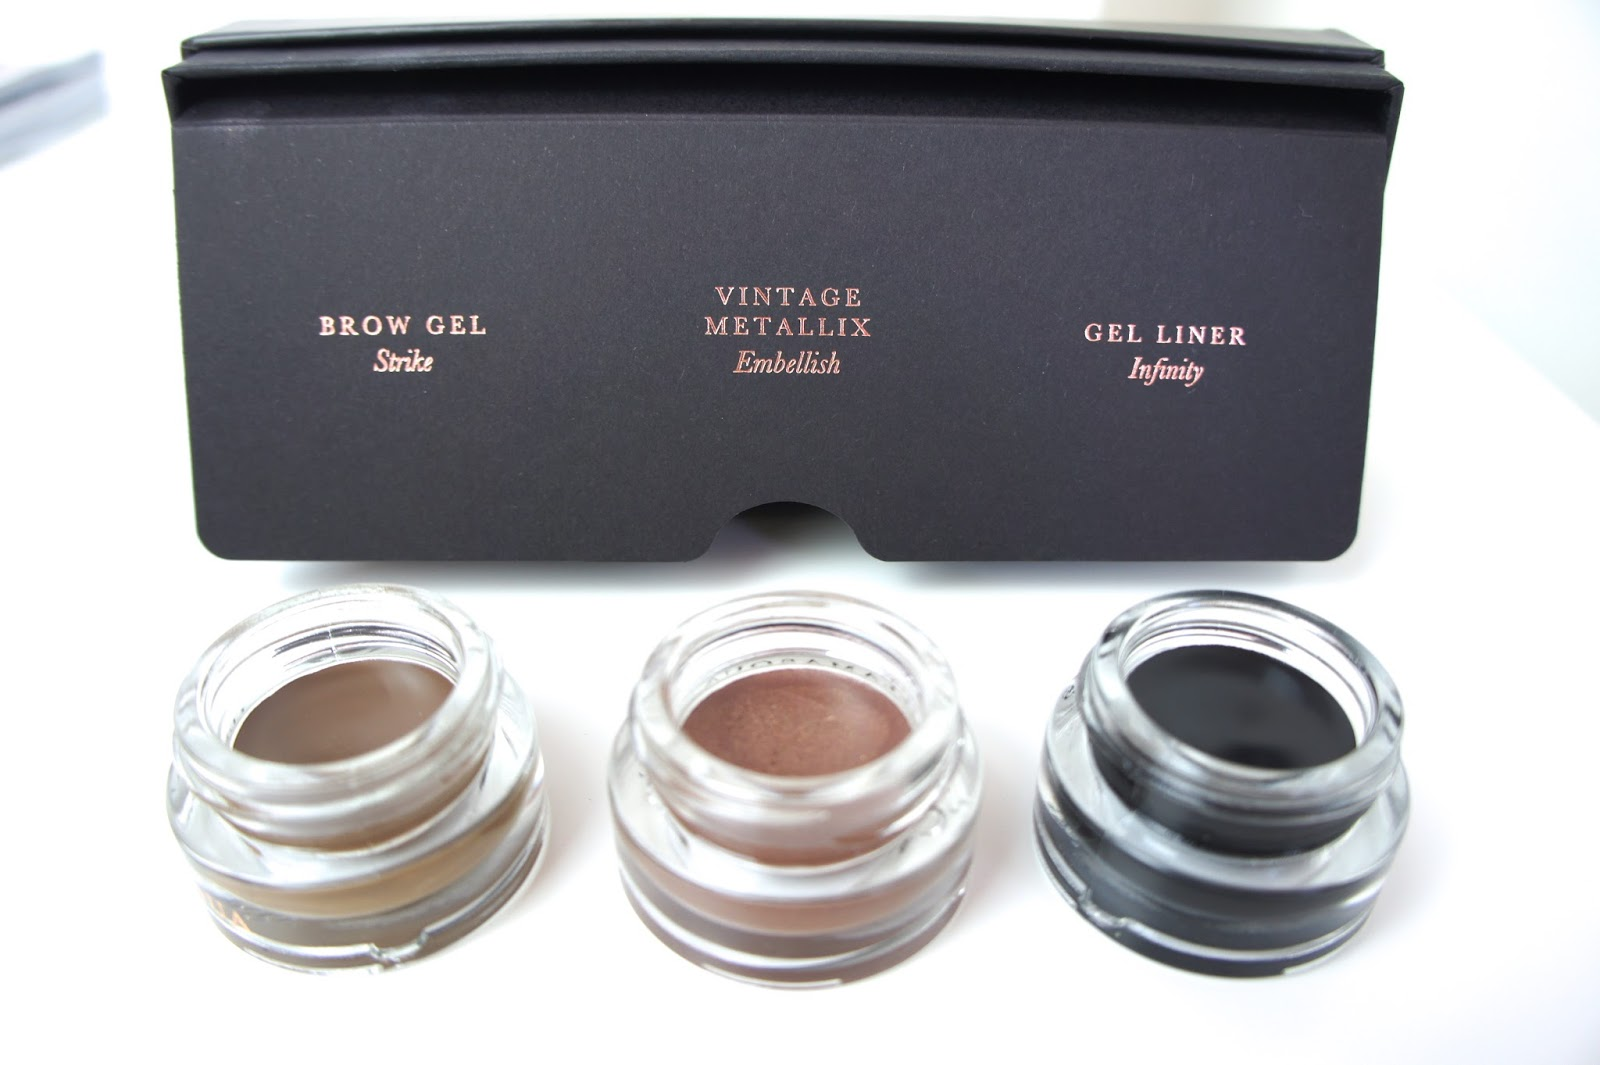 Illamasqua,eye,trio,brow,gel,strike,eyeliner,vintage,metallix,embellish